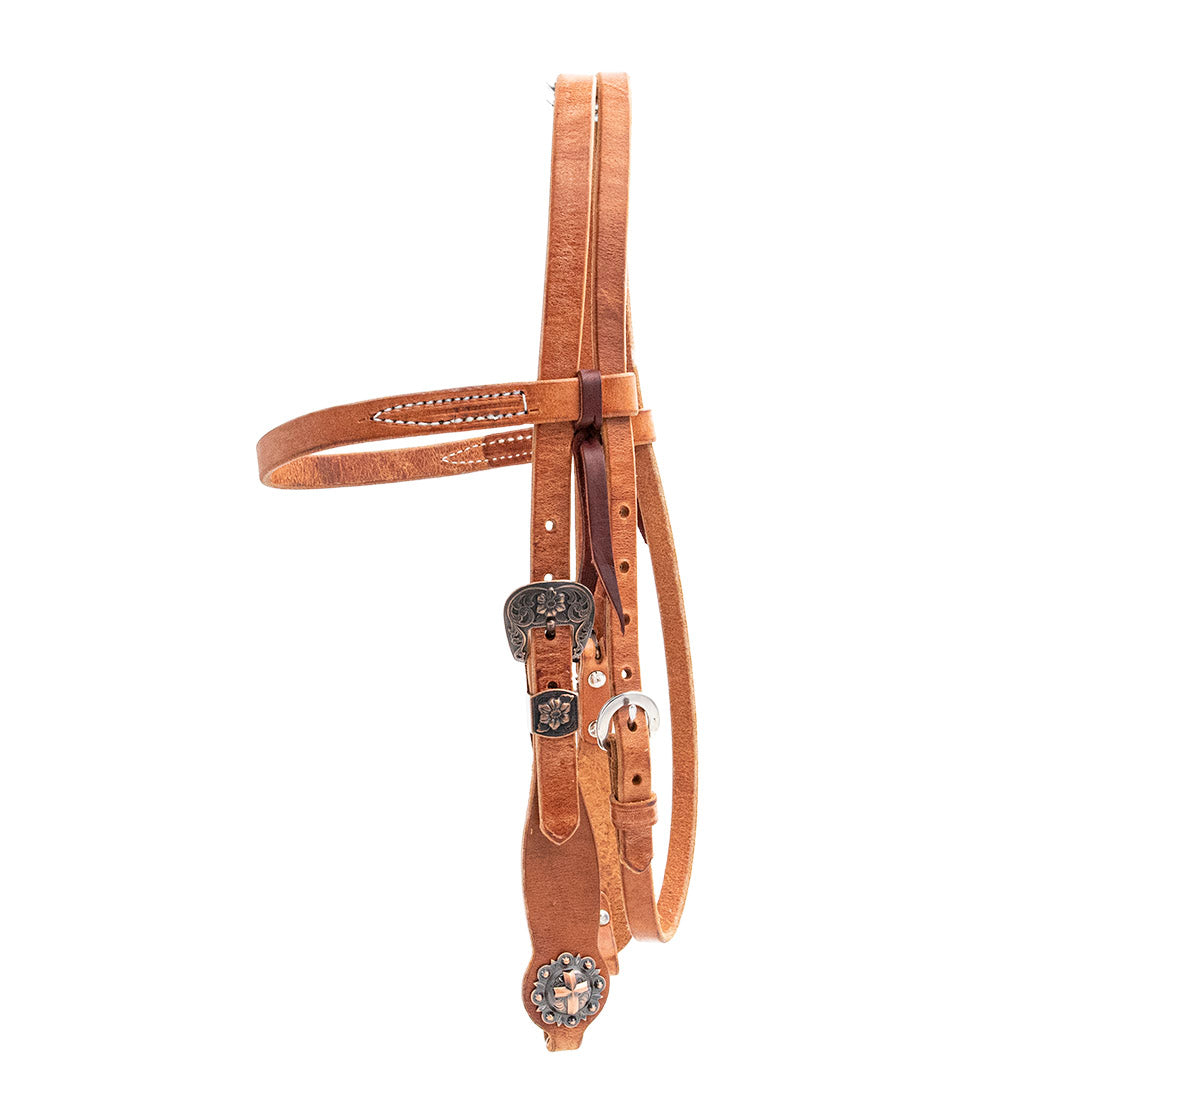 Load image into Gallery viewer, Berlin Leather - Brown Harness Headstall Copper Cross Conchos - Animal Health Express